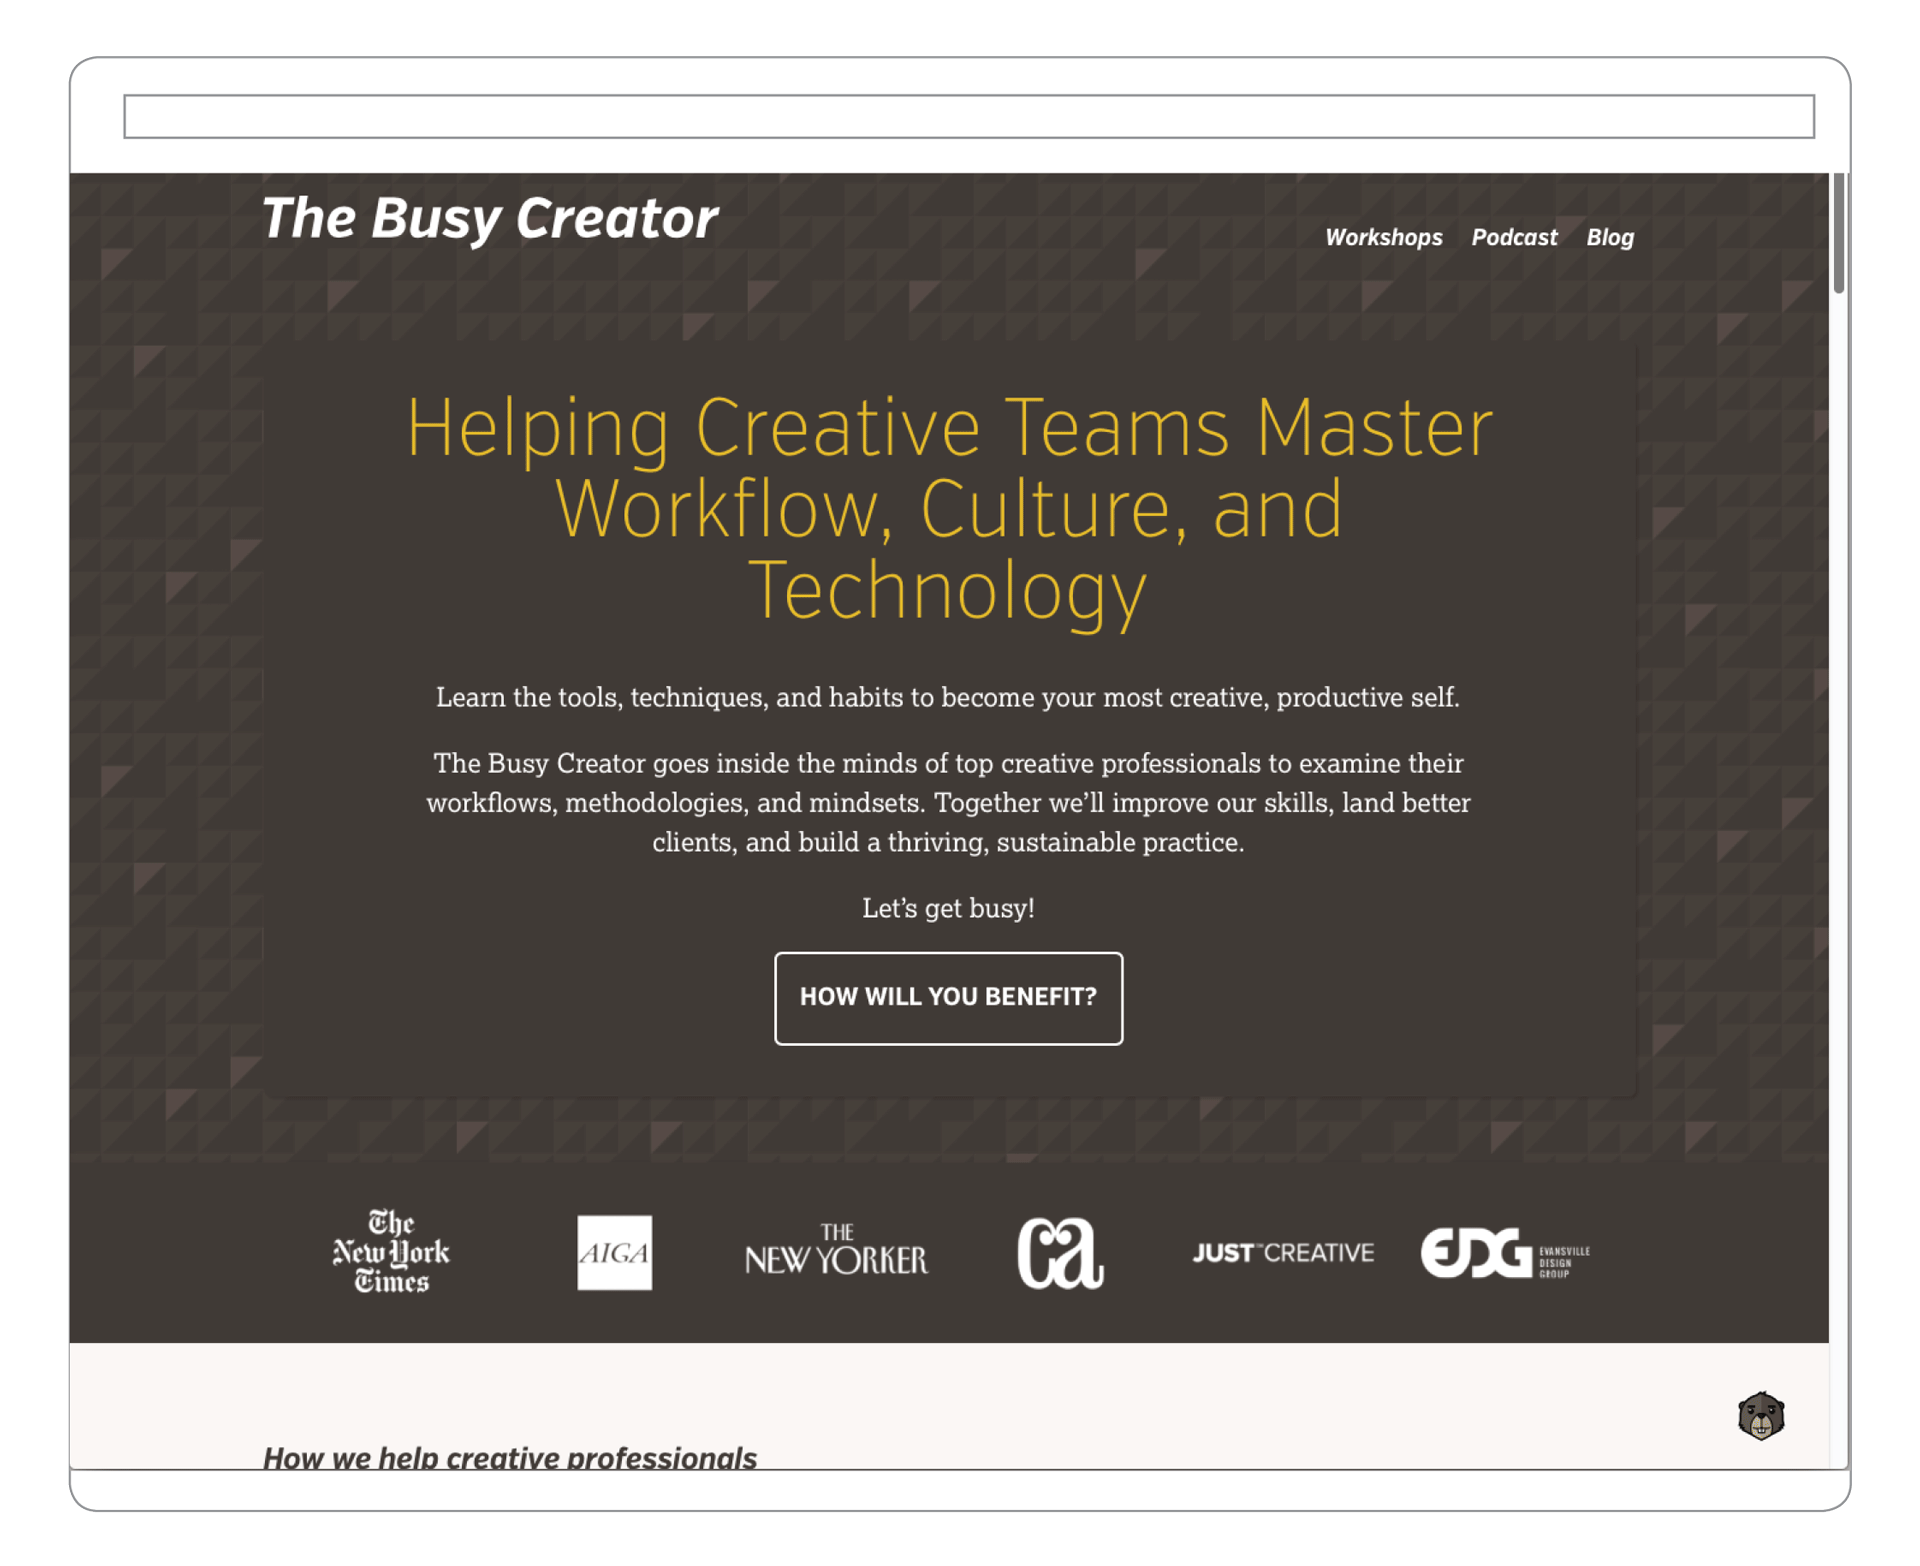 The Busy Creator website